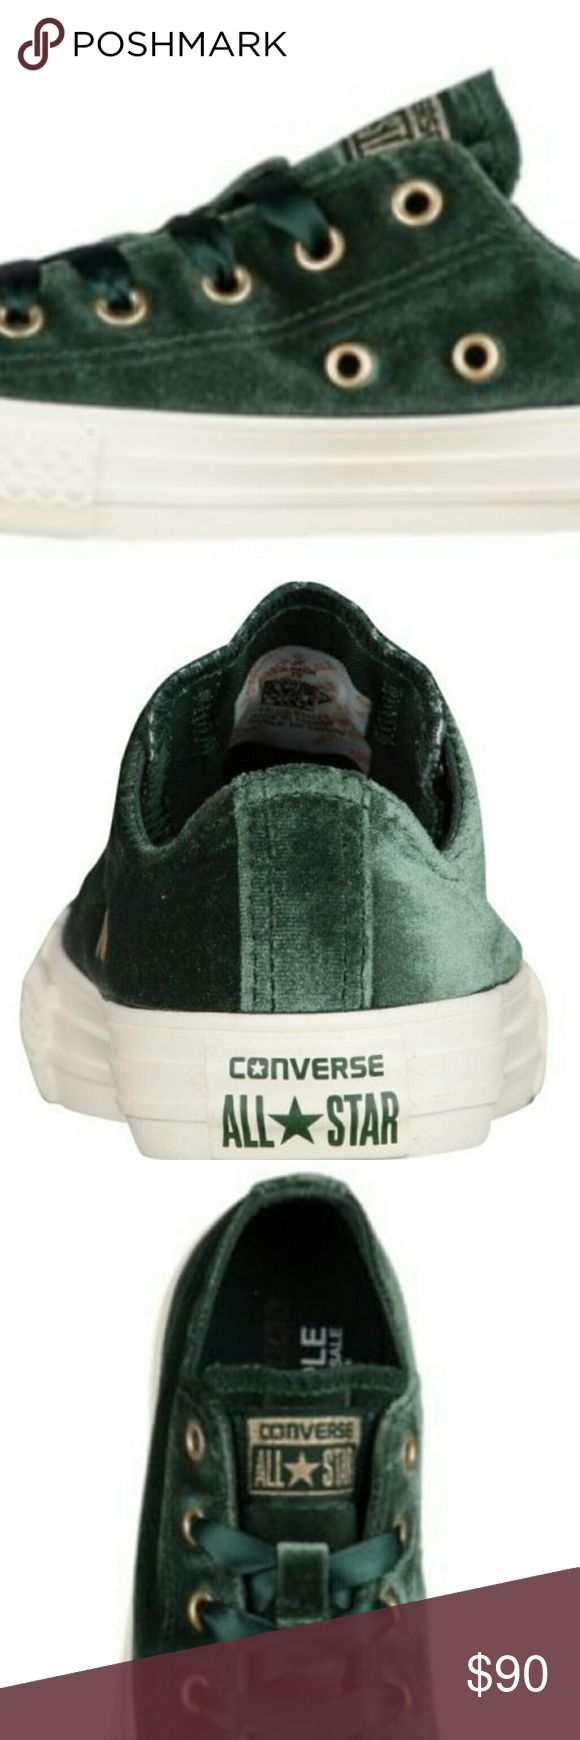 Grew suede converse for men women and kids Green suede converse for men women and kids any size and colors Converse Shoes